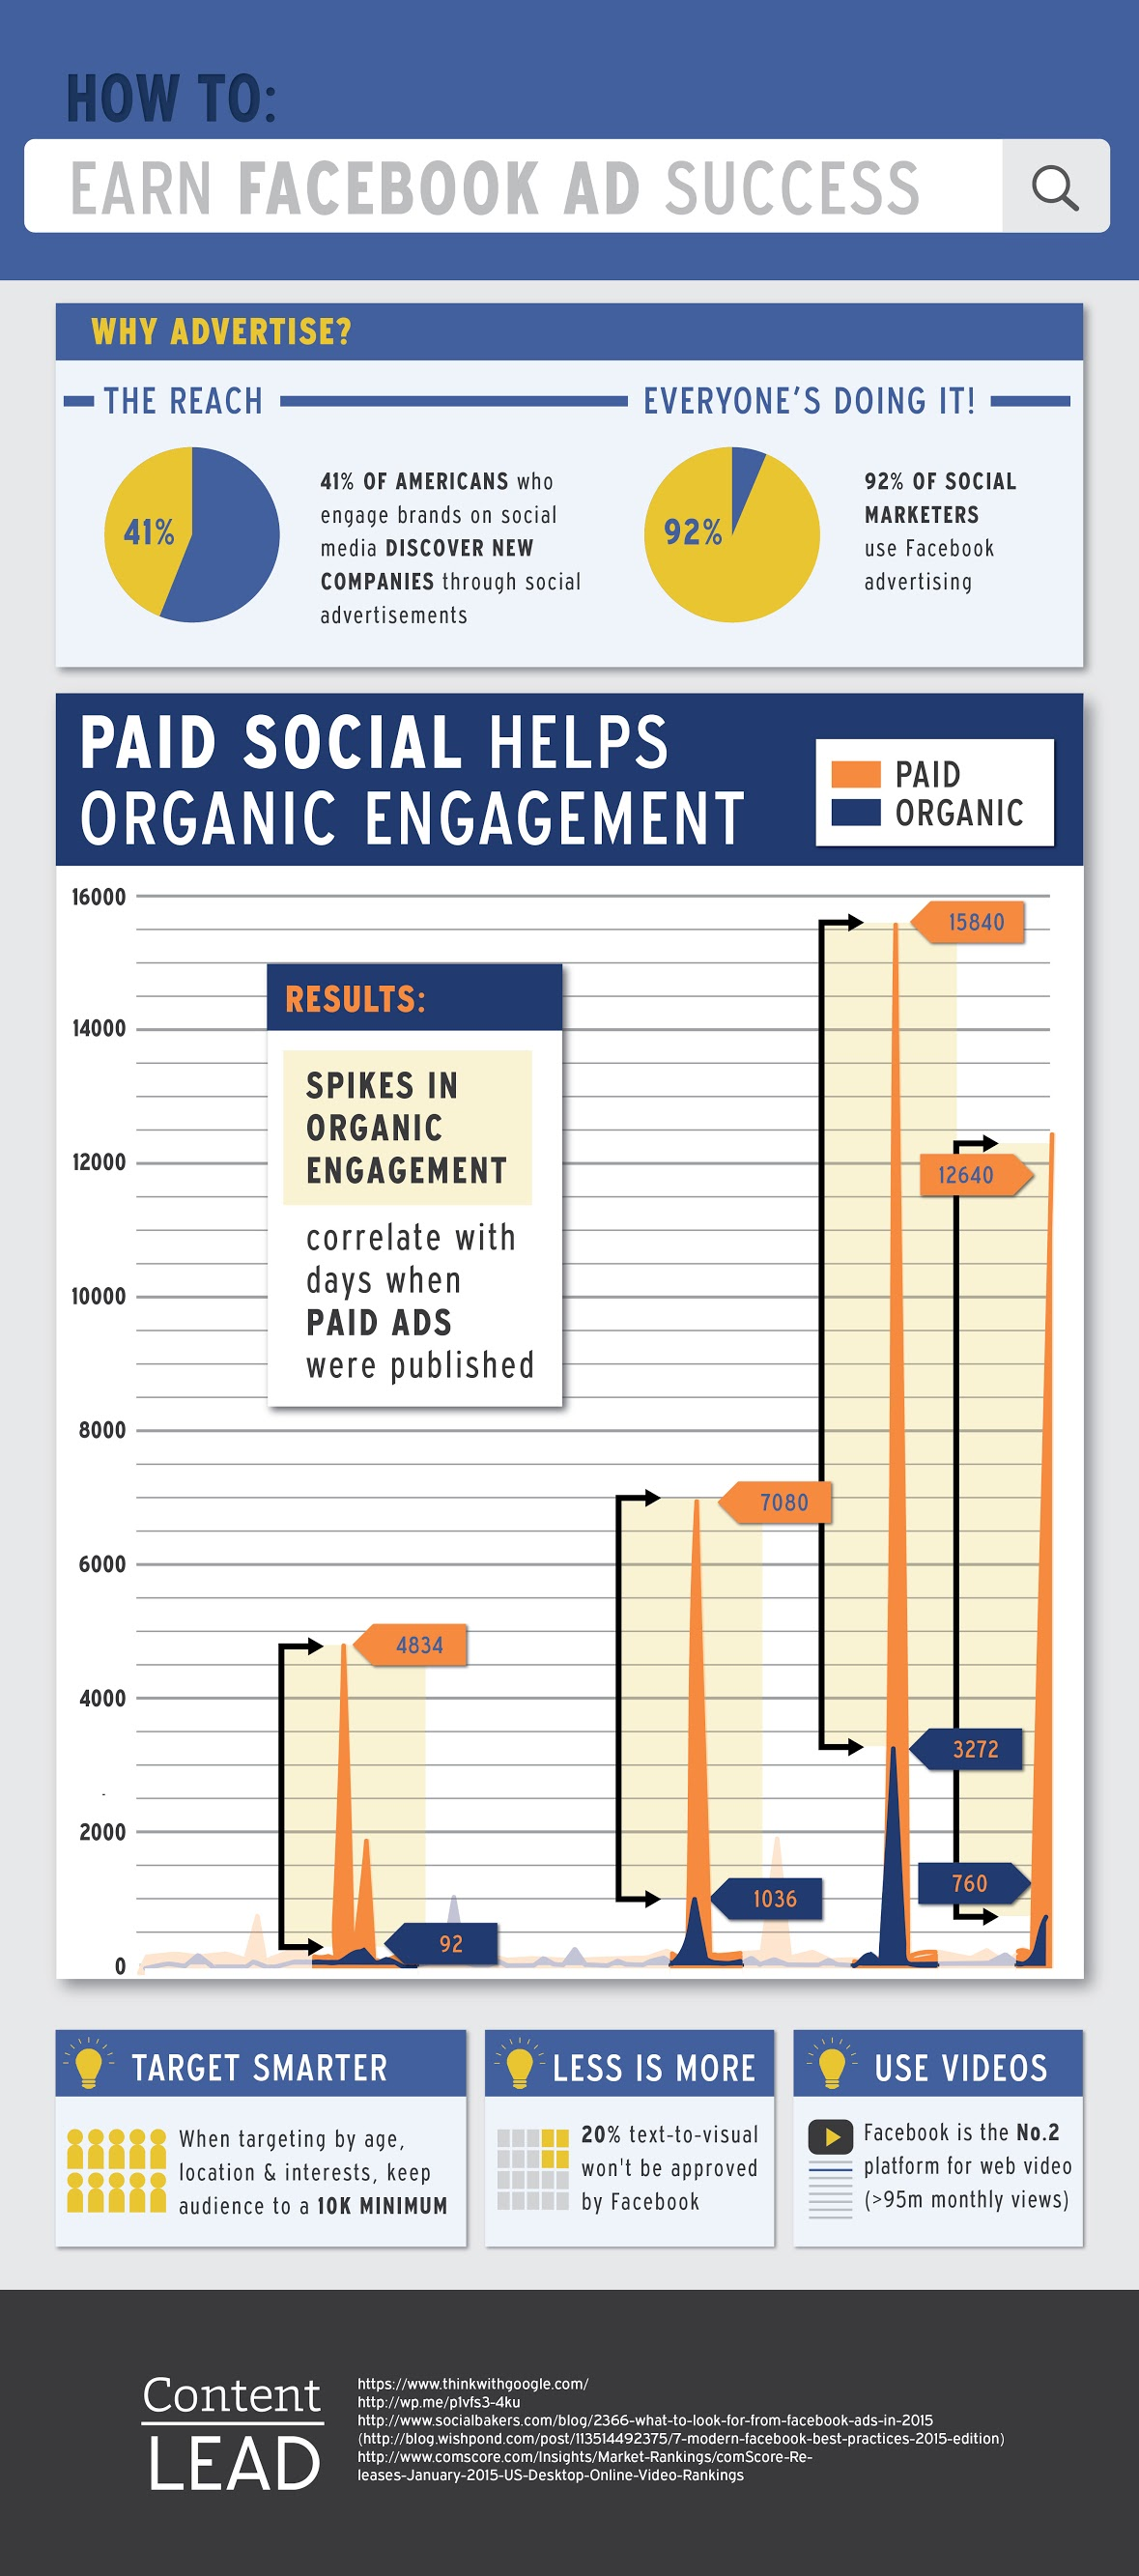 #Infographic: How to earn Facebook ad success